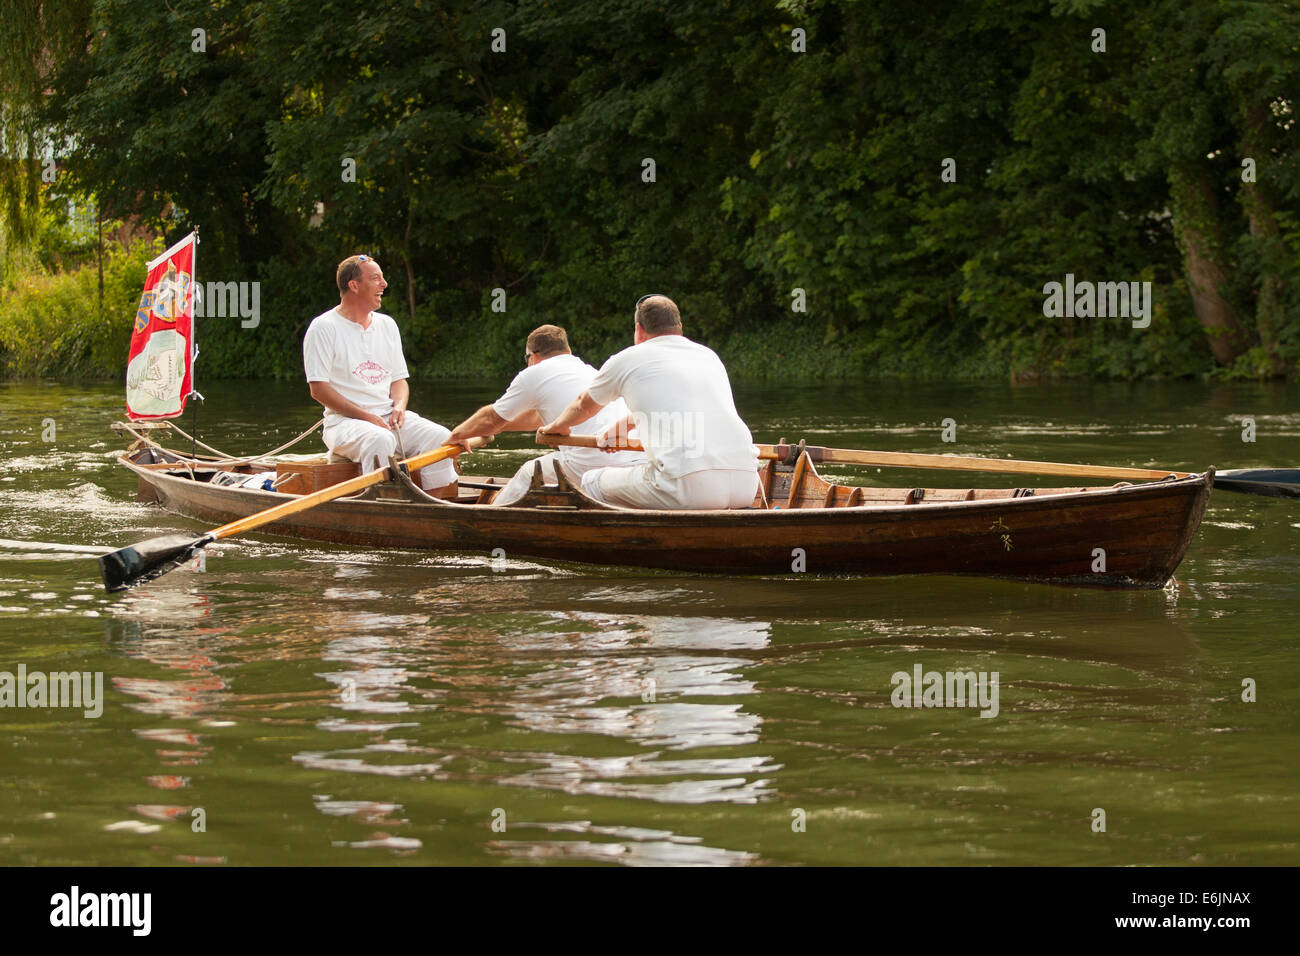 The annual ceremony of Swan Upping on the River Thames in WIndsor. - Stock Image